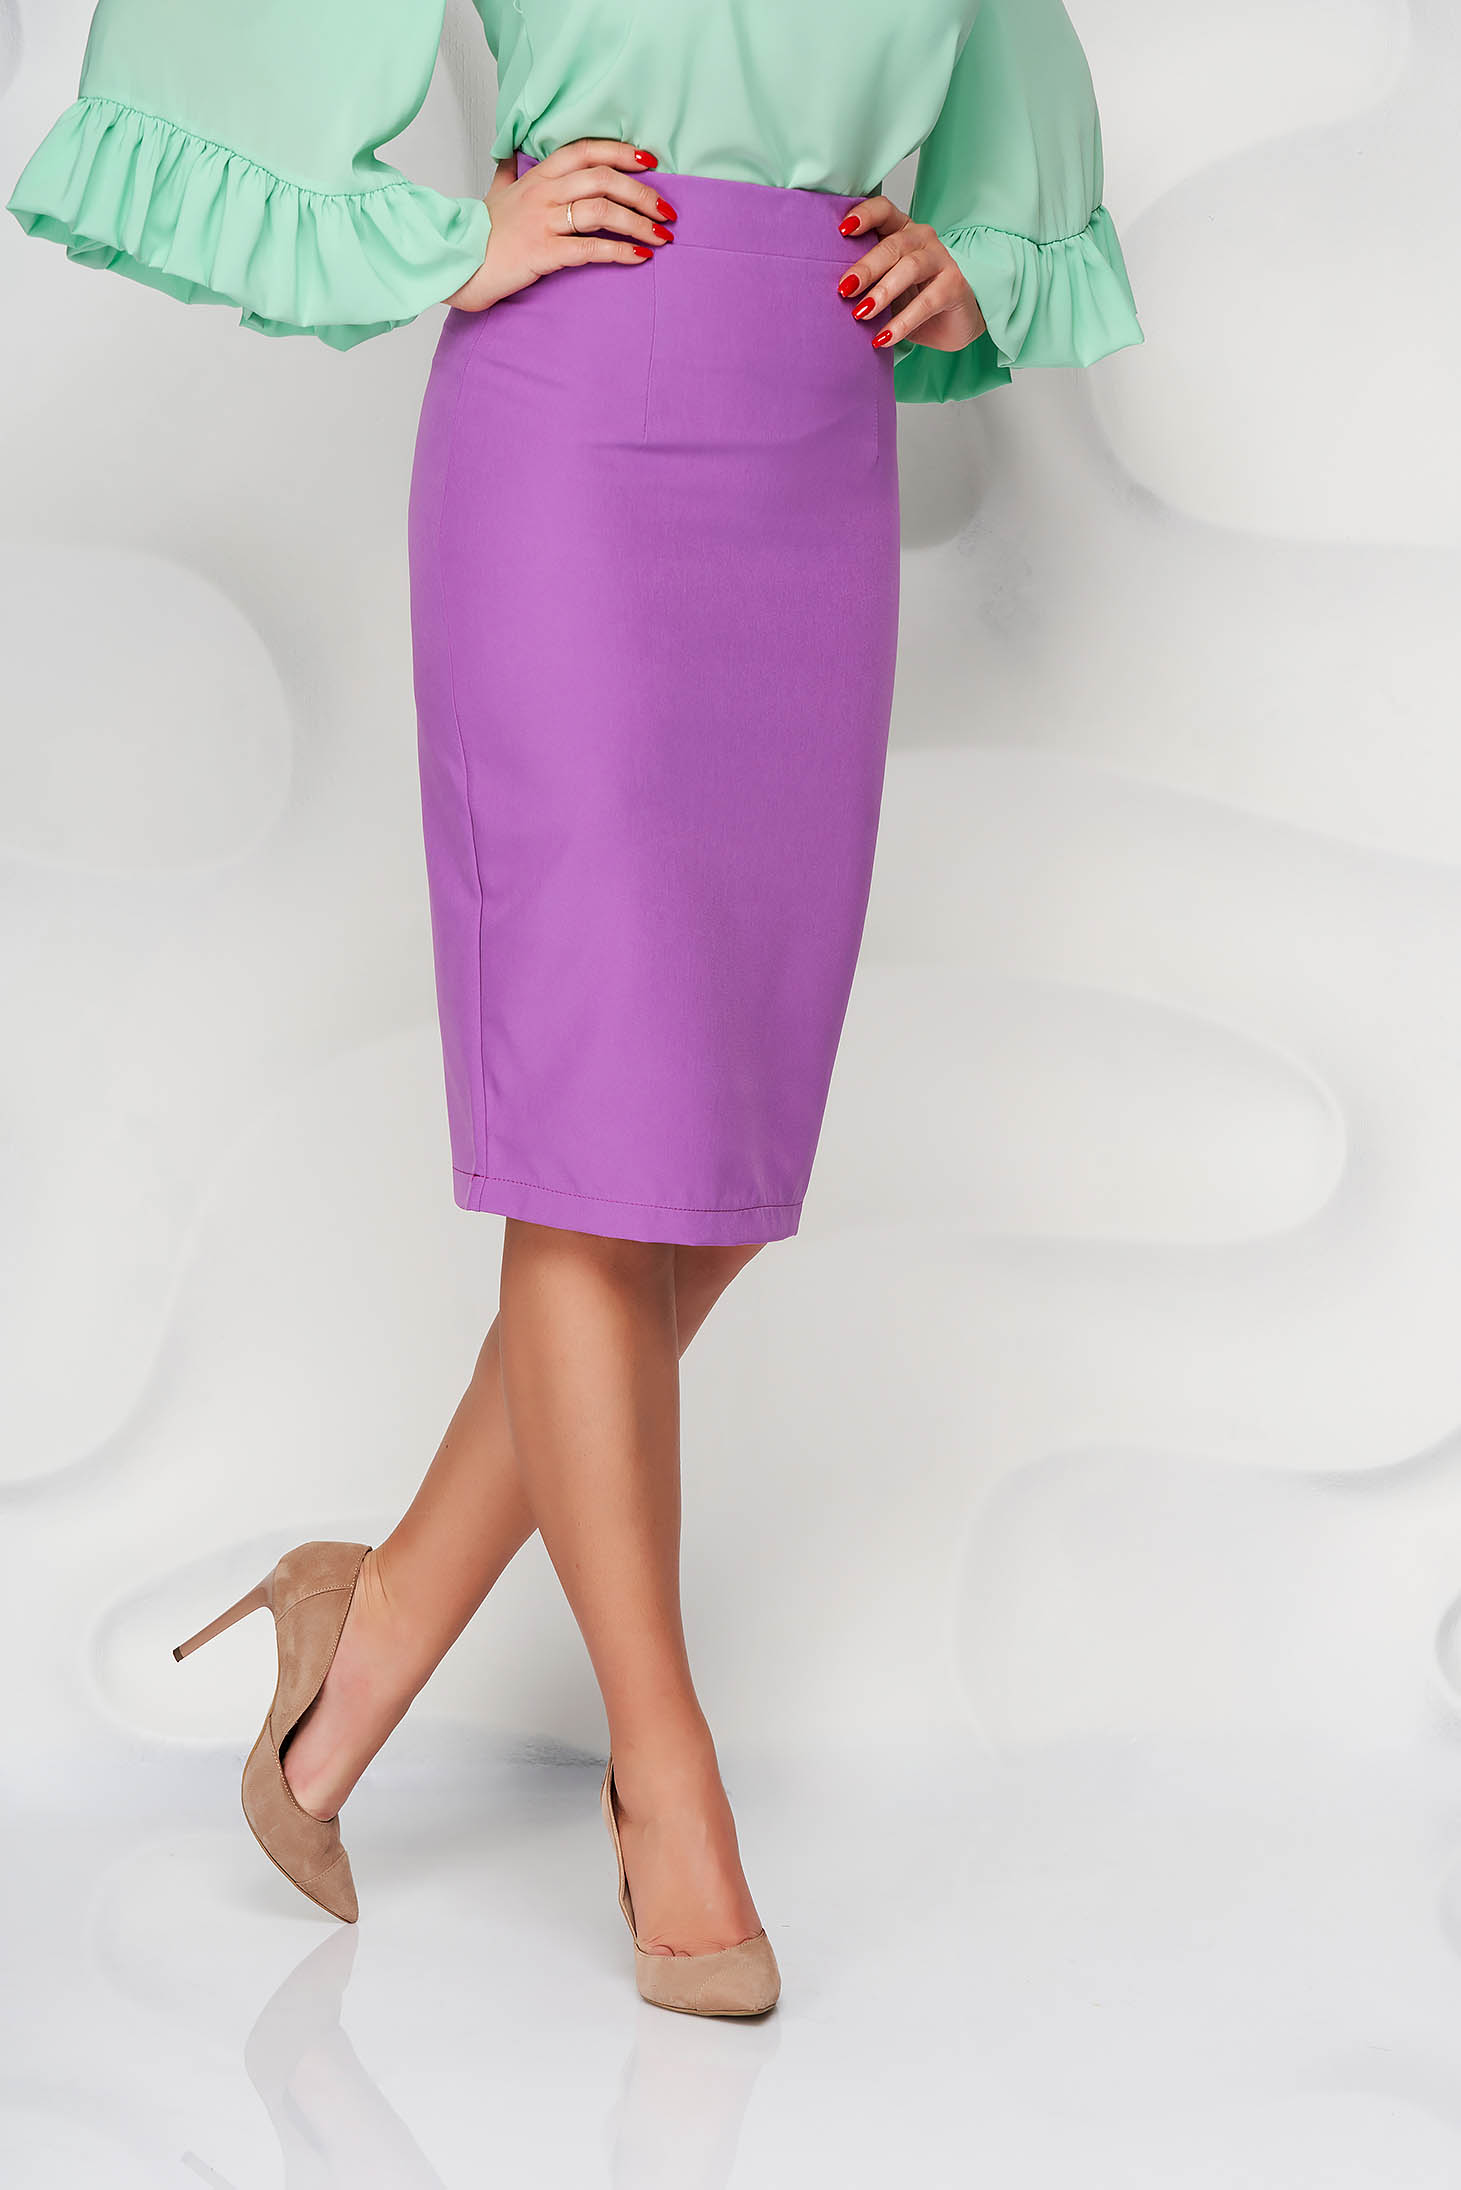 StarShinerS purple high waisted skirt office pencil cloth midi from elastic fabric